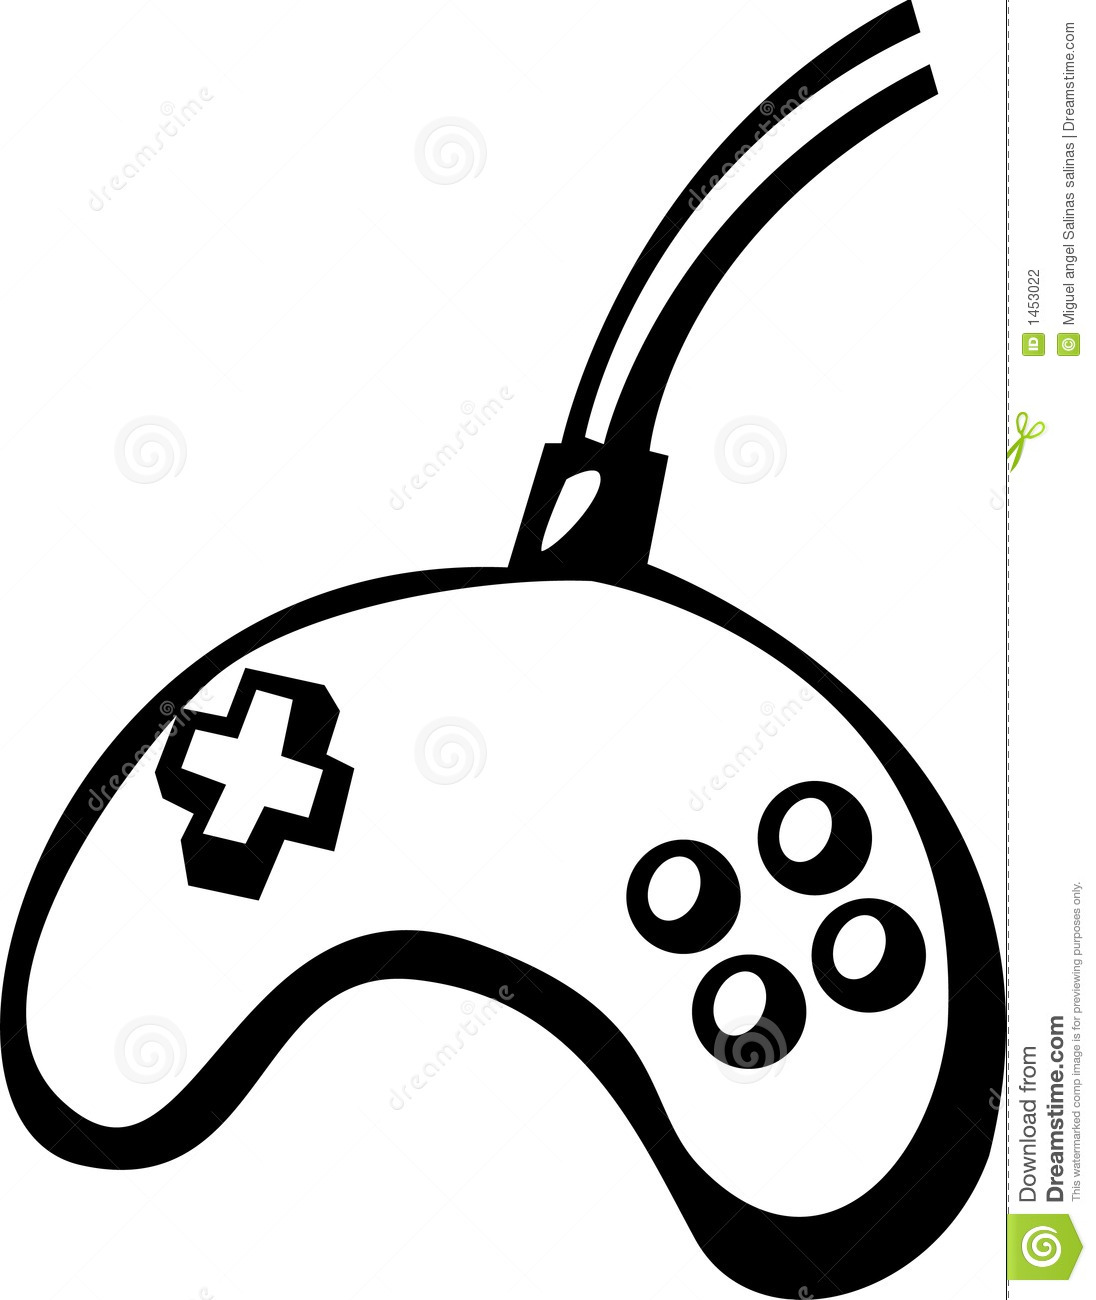 1096x1300 Xbox Black And White Clipart